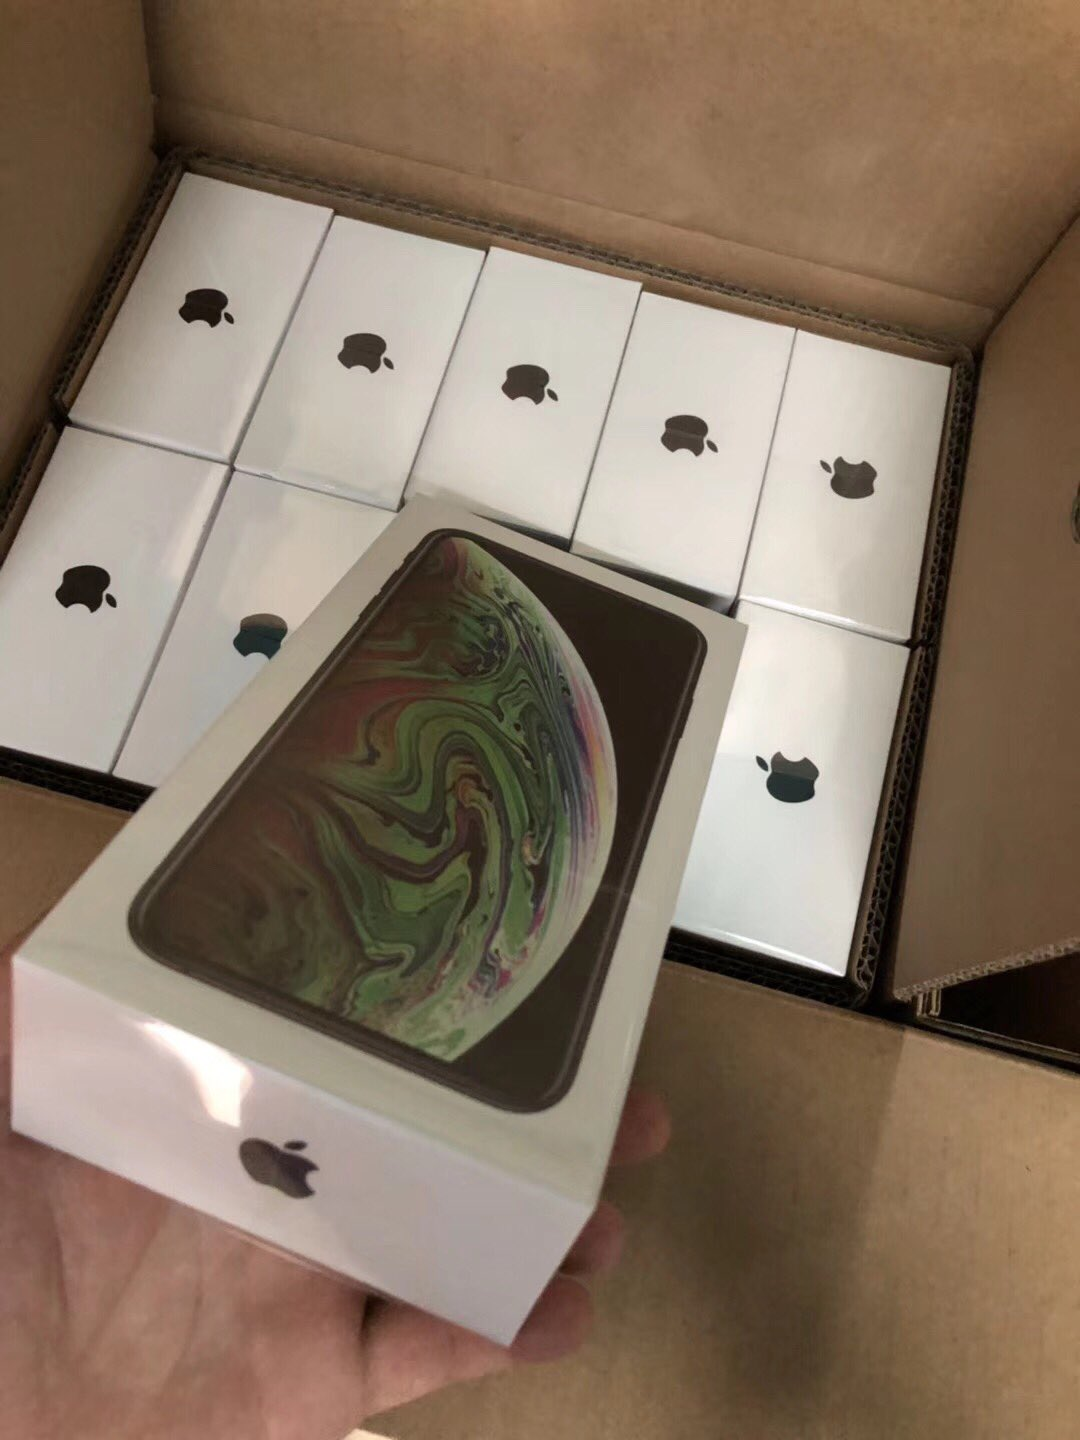 BRAND NEW APPLE IPHONE X, XS, XS MAX, SIM-FREE, FACTORY SEALED, NEVER-OPENED, FACTORY UNLOCKED, 100% ORIGINAL